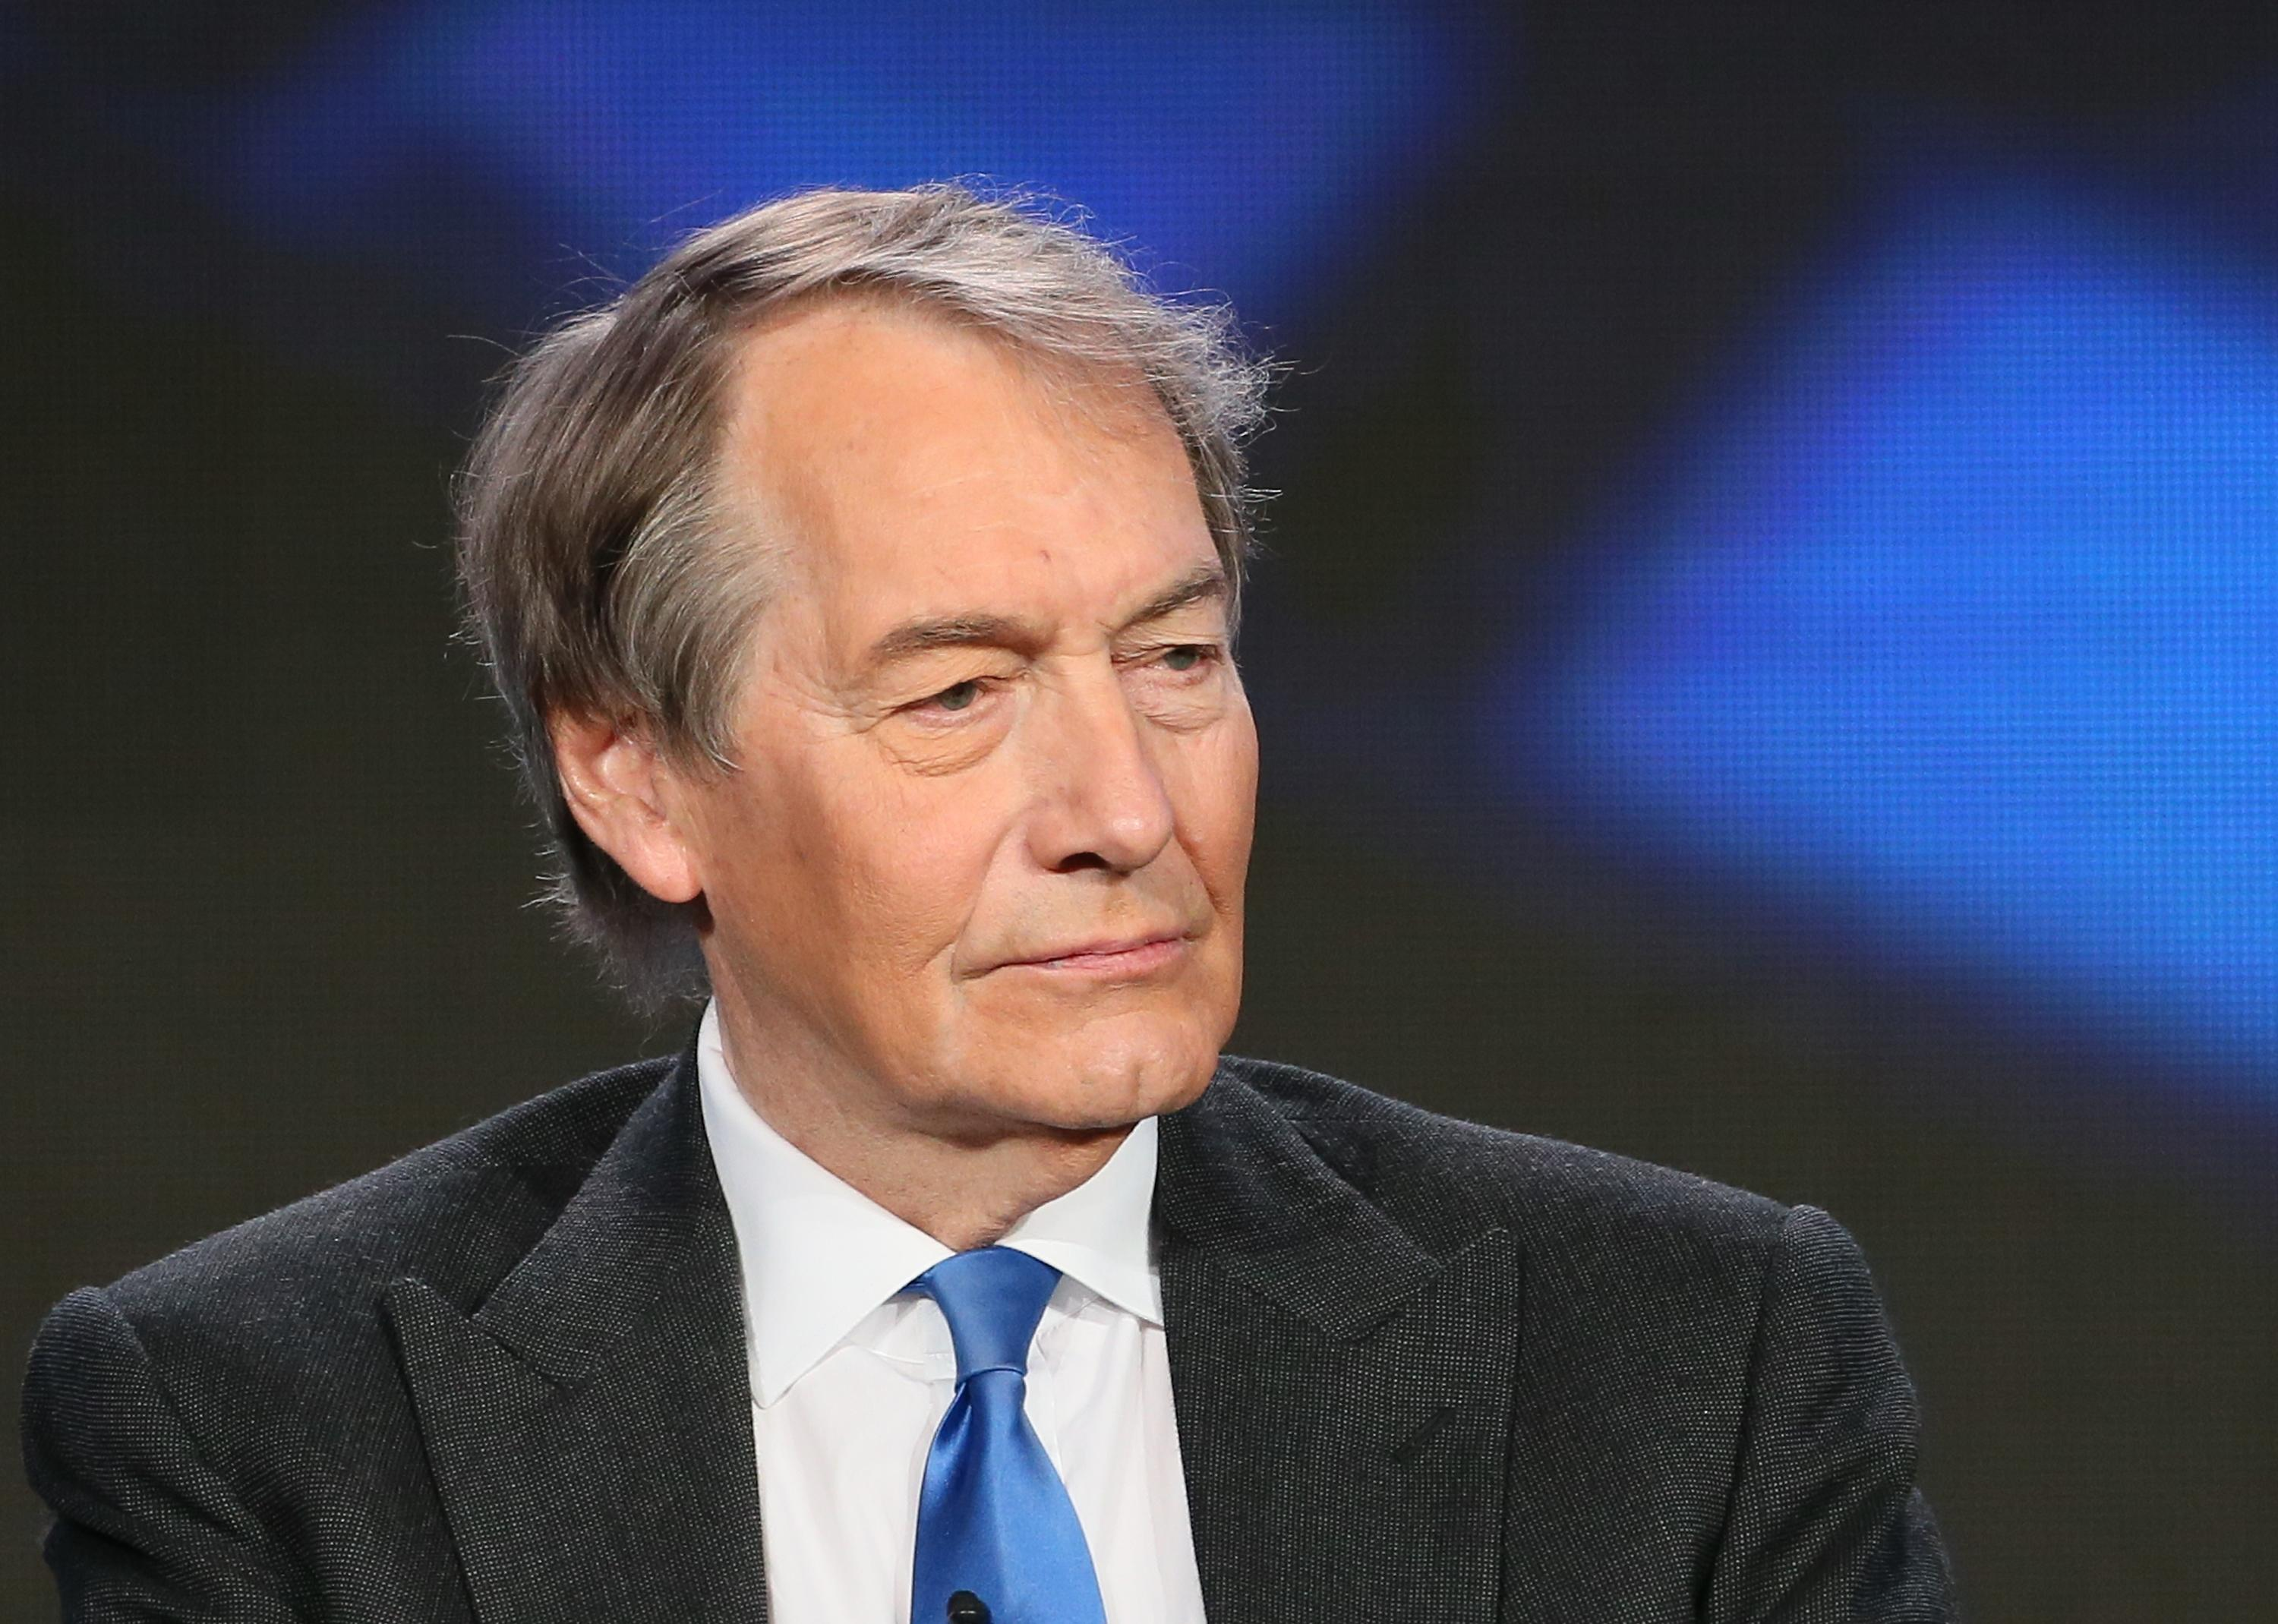 Charlie Rose Fired Cbs Pbs After >> 'CBS This Morning' Reports New Allegations Of Sexual Misconduct At CBS By Ex-Anchor Charlie Rose